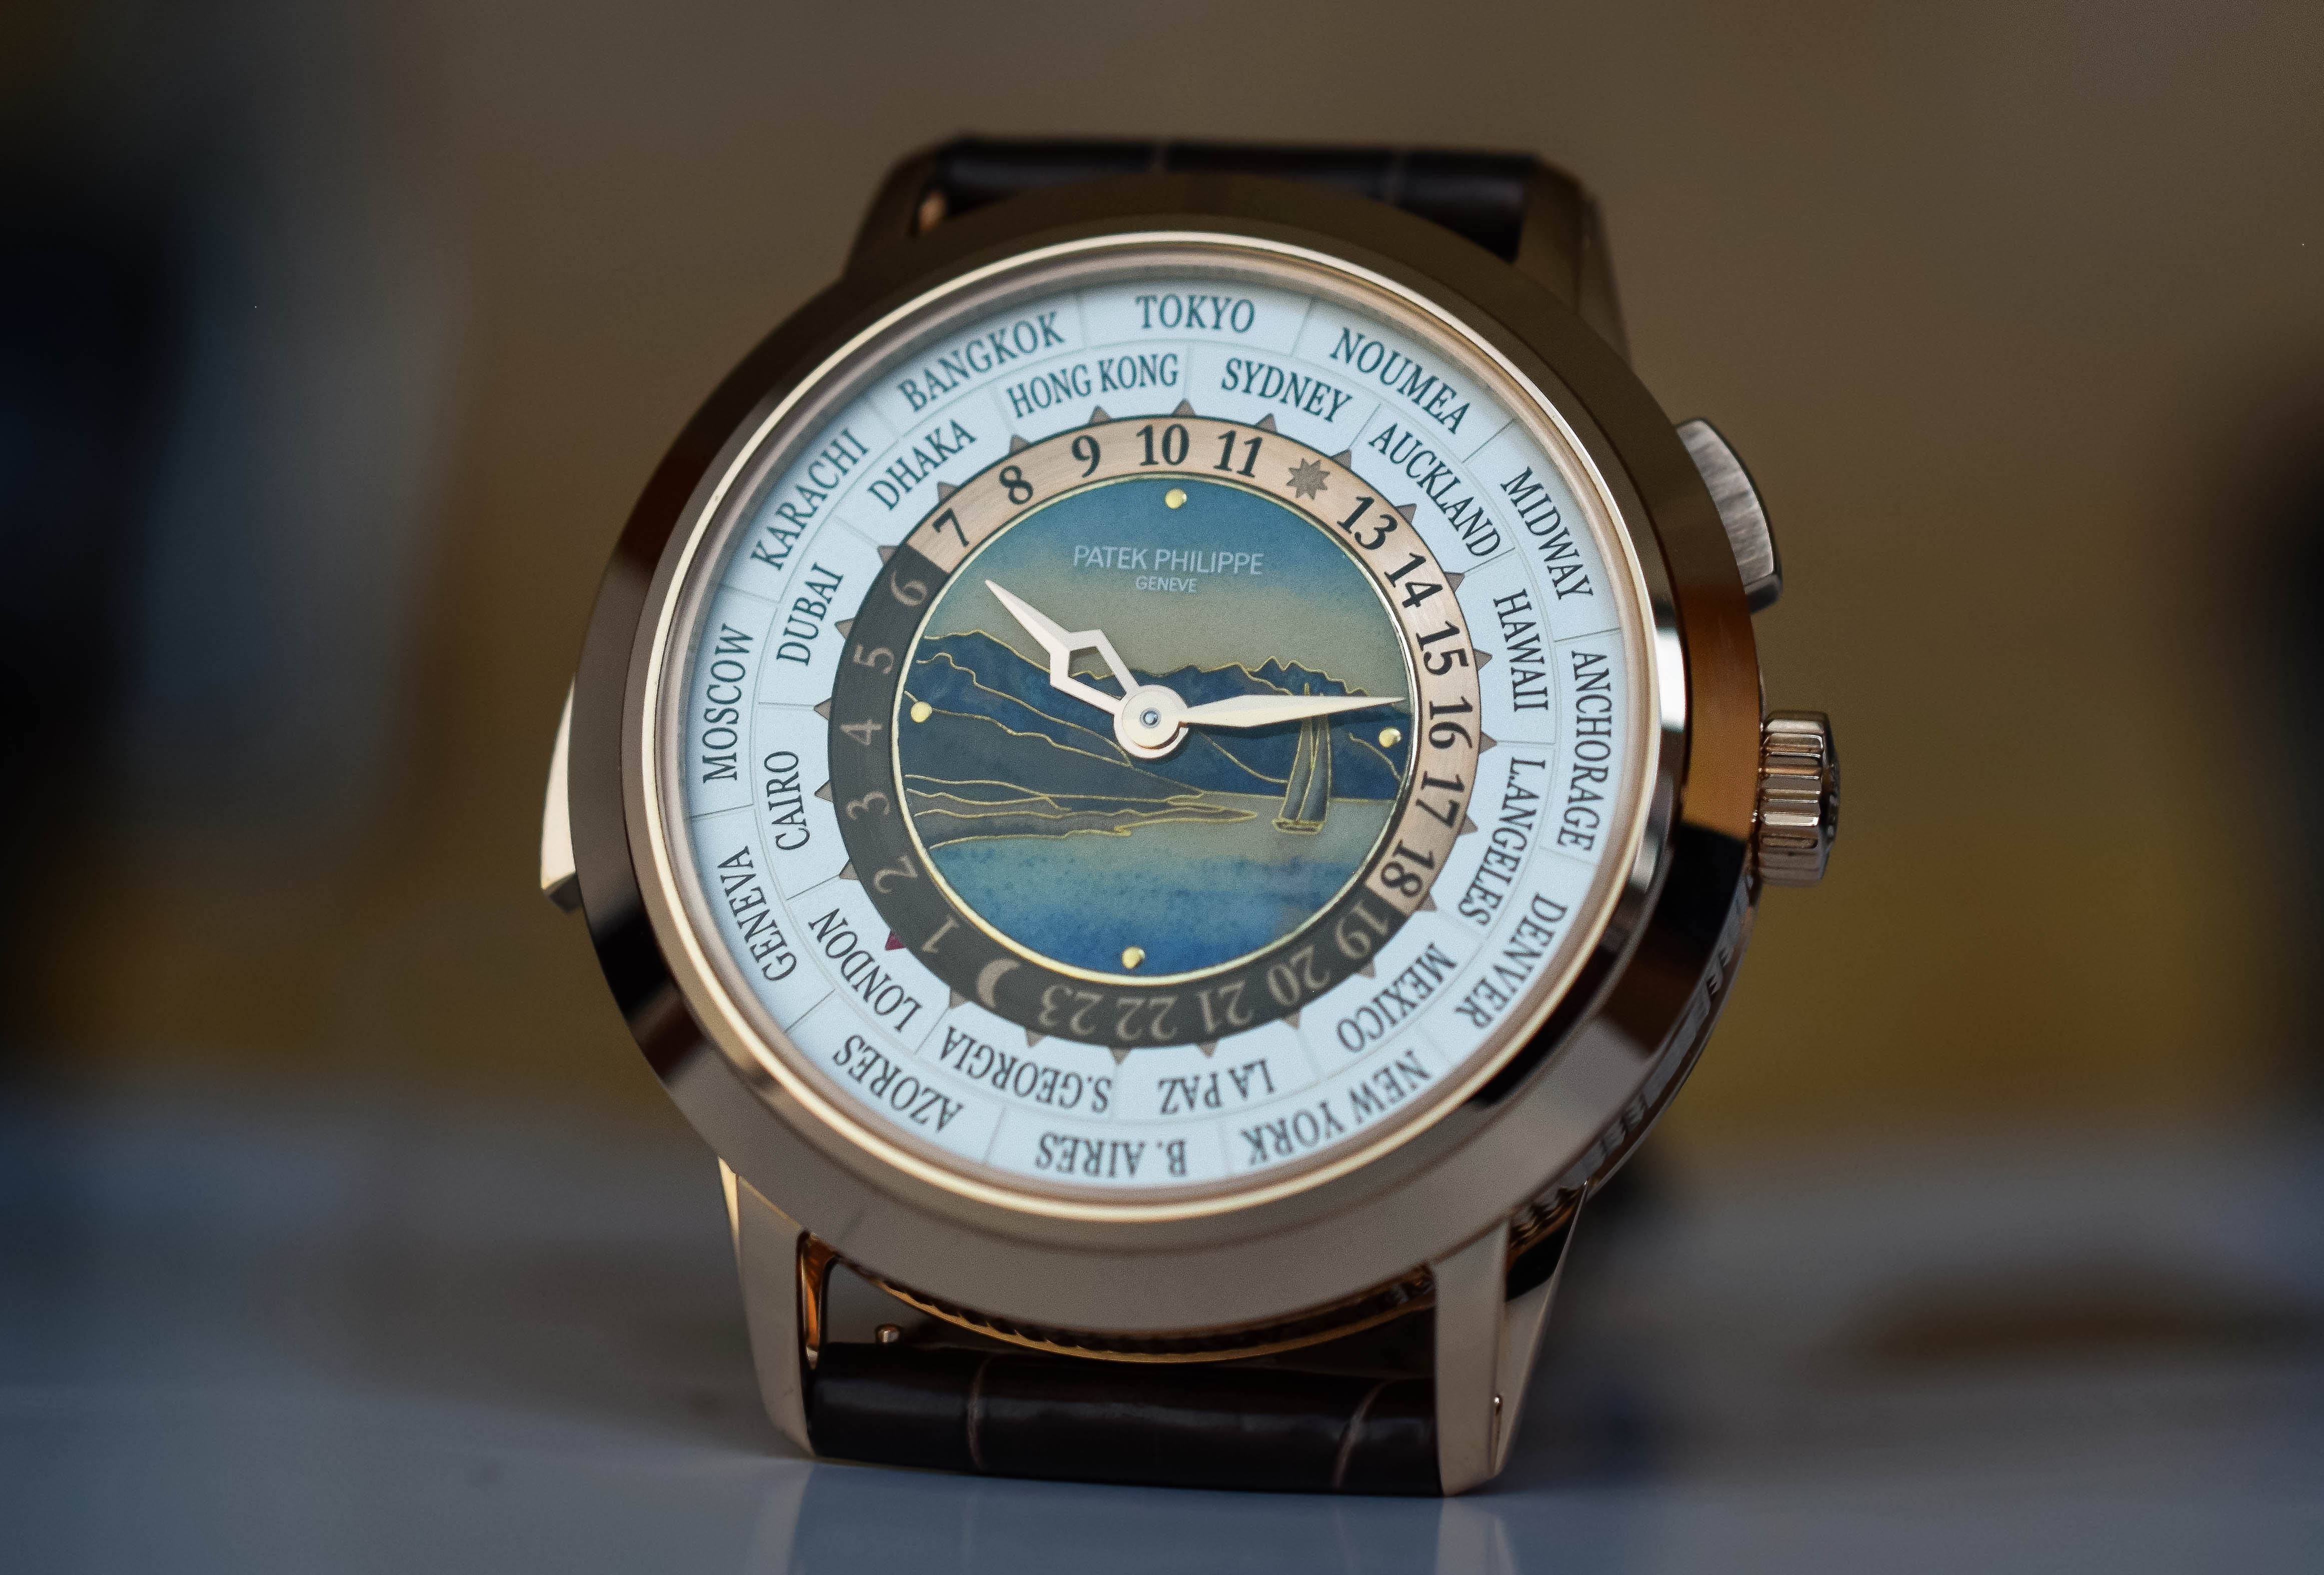 Patek Philippe World-Time Minute Repeater 5531R - 5